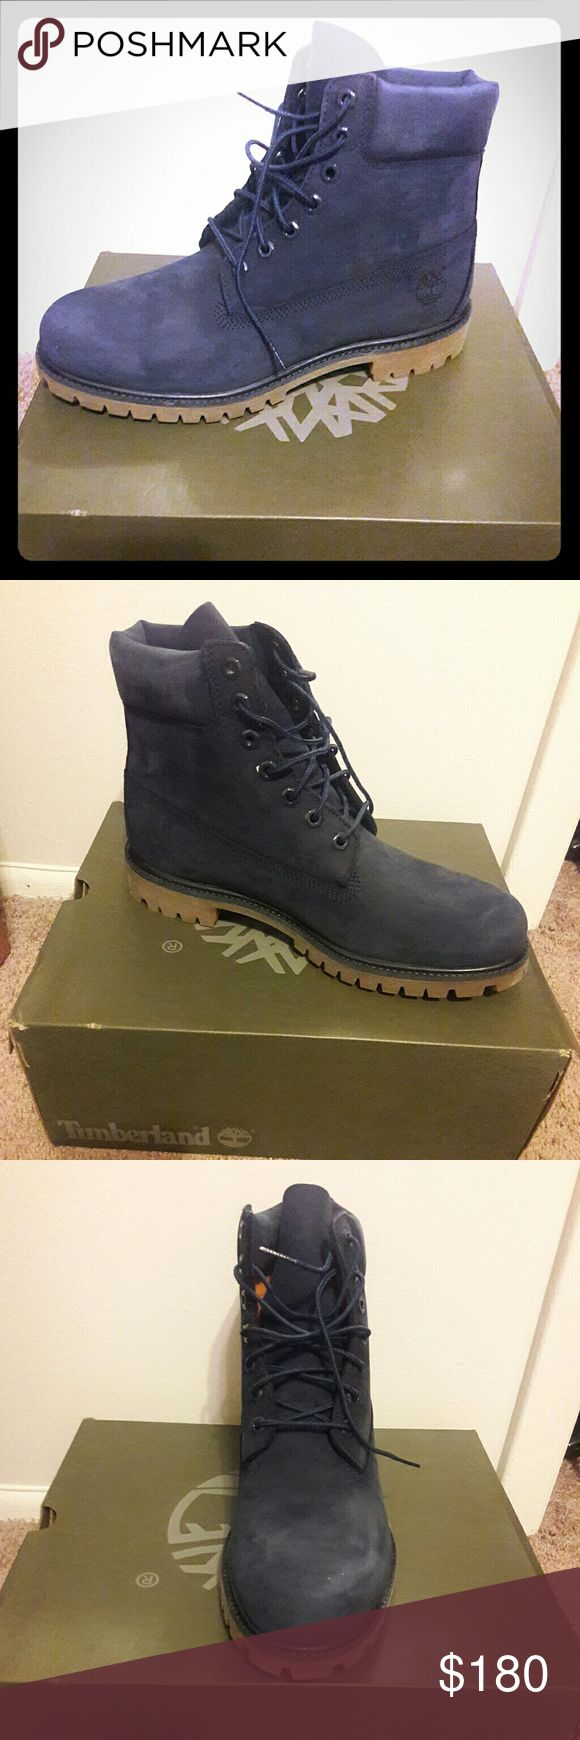 Navy Blue Timberland Boots.. All navy blue suede timberland boots, brand new with box..never worn...fly&flashy just like on the pictures Timberland Shoes Boots